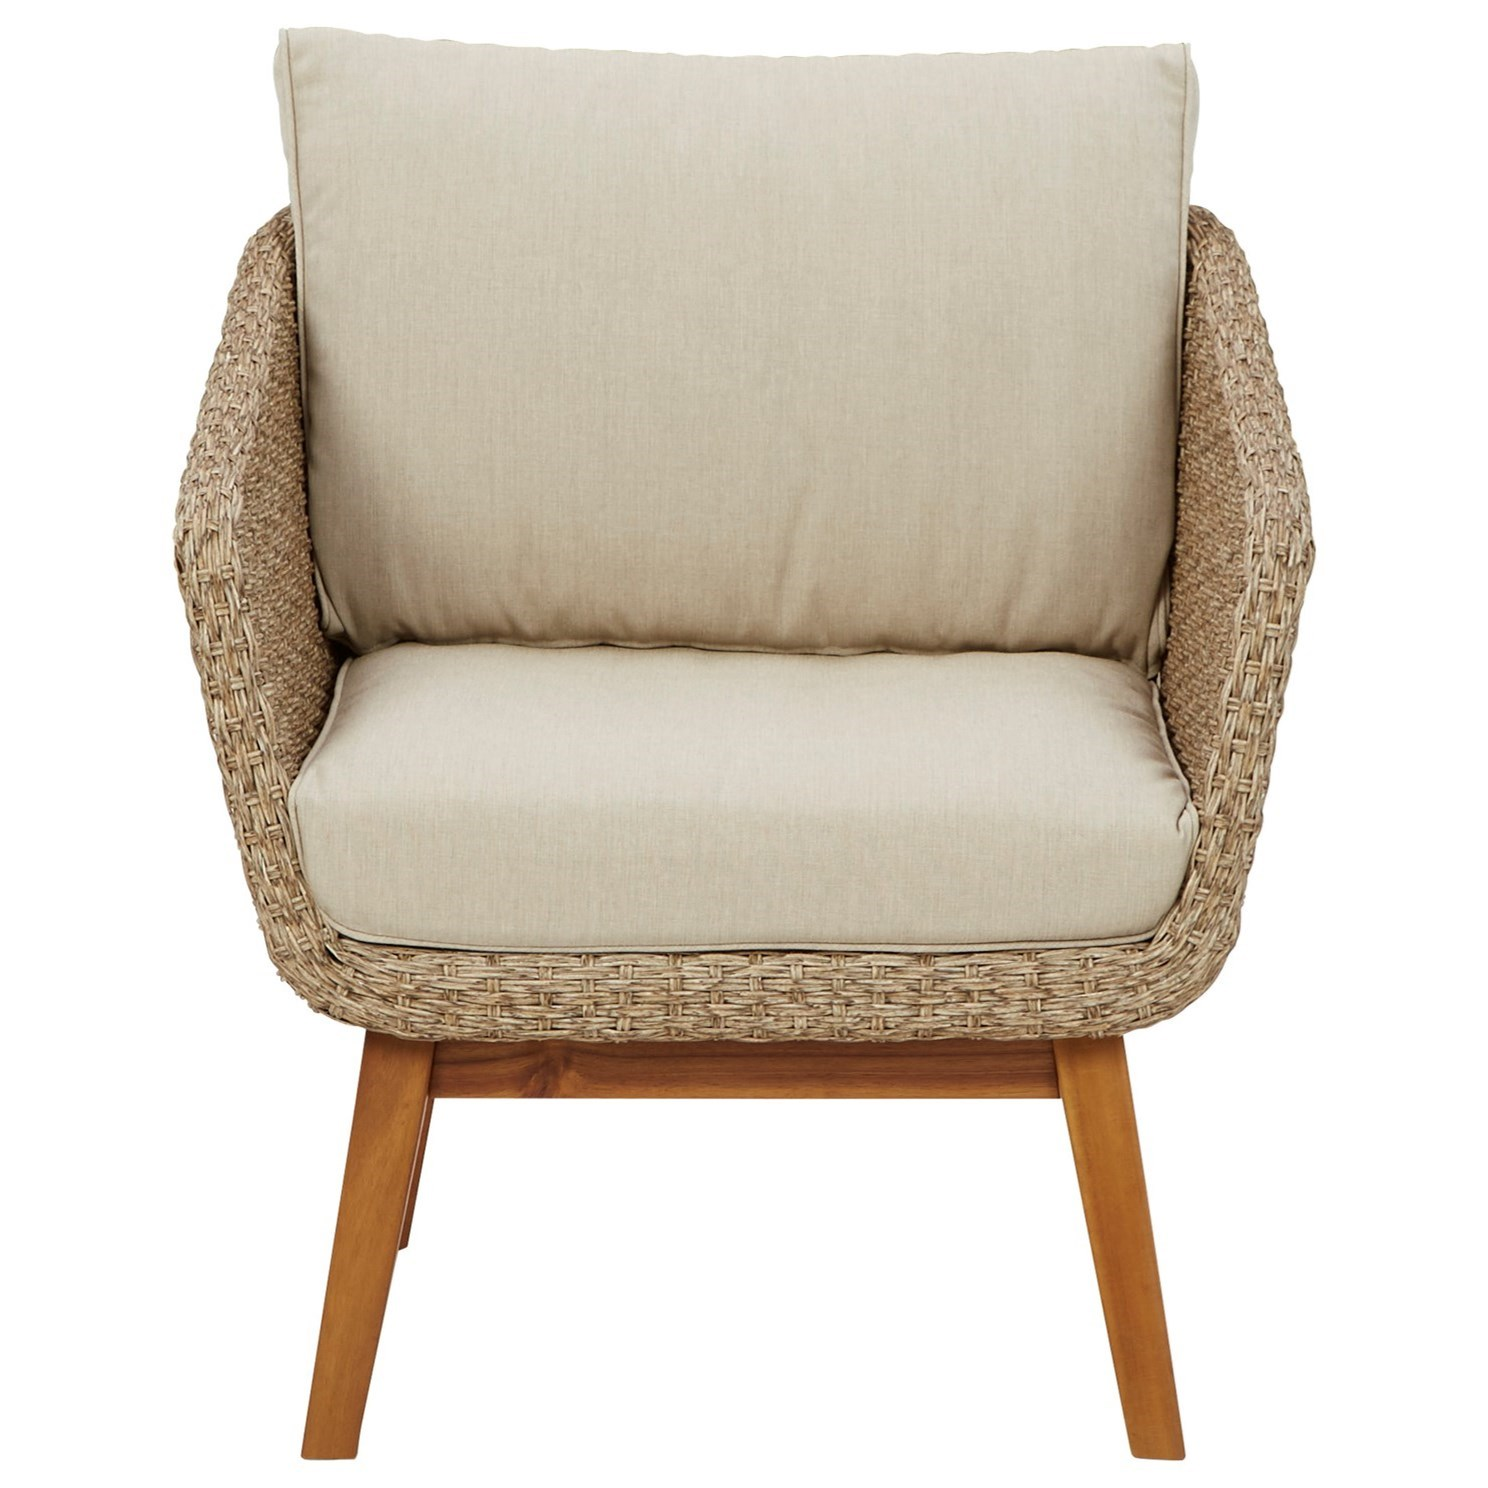 Crystal Cave Lounge Chair w/ Cushion by Signature Design by Ashley at Northeast Factory Direct